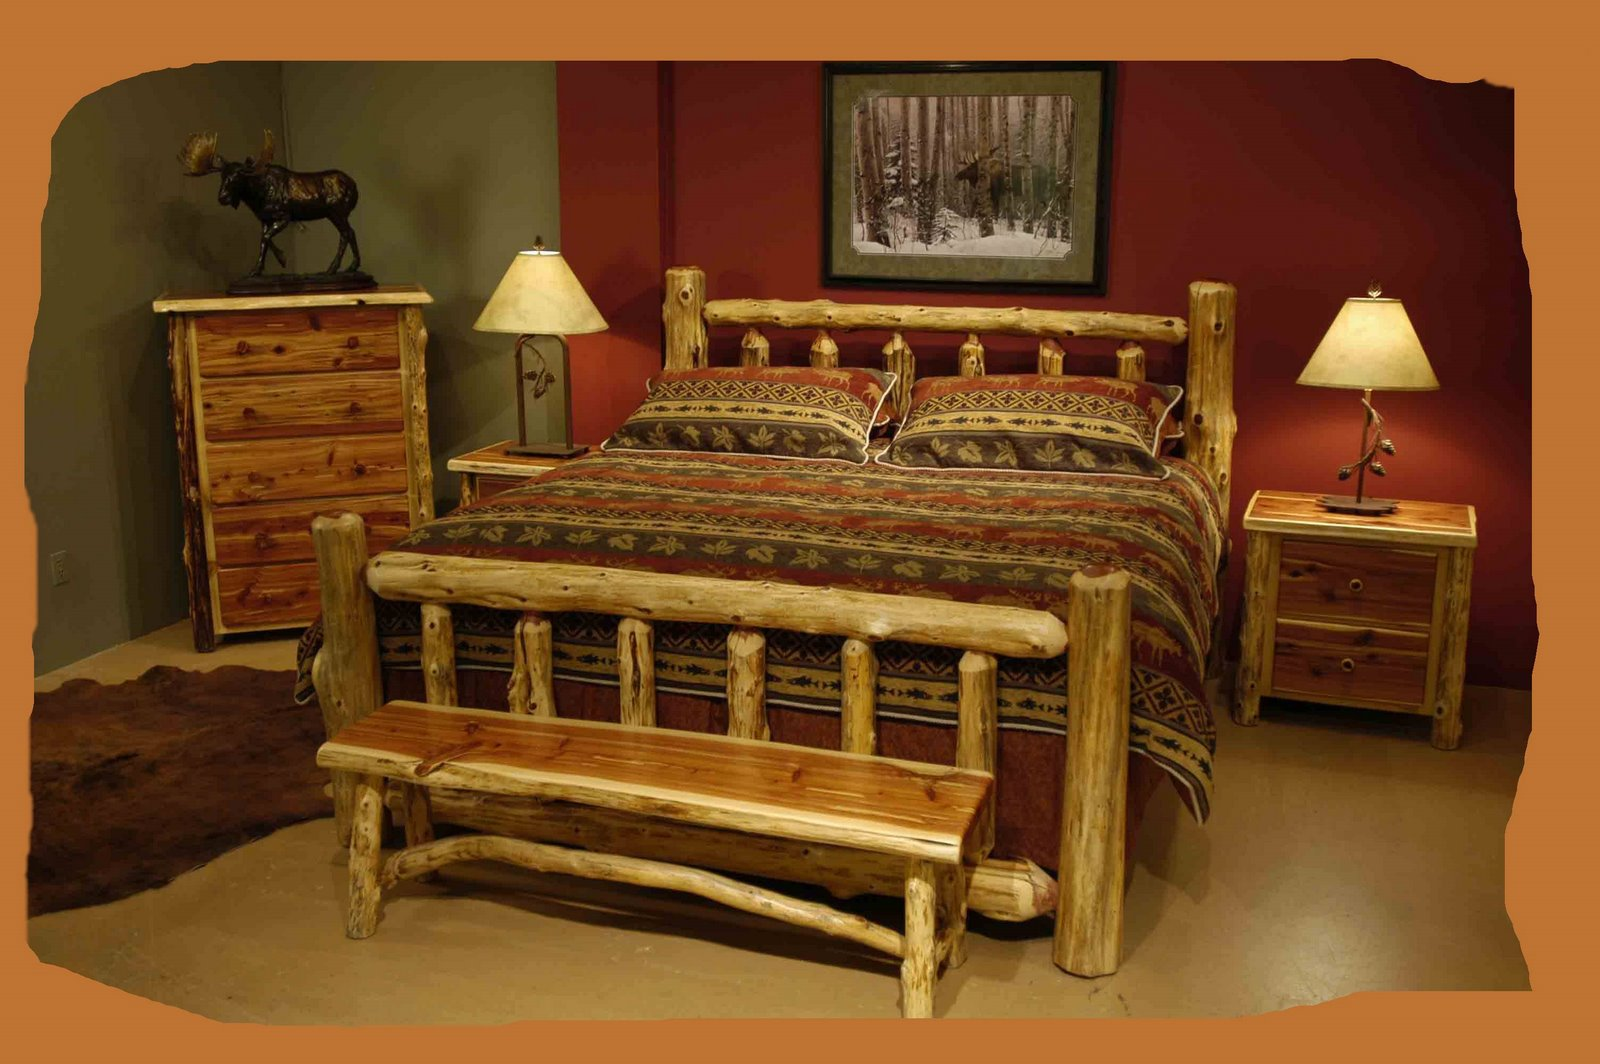 Latest home furniture information wooden bed for Home furniture beds